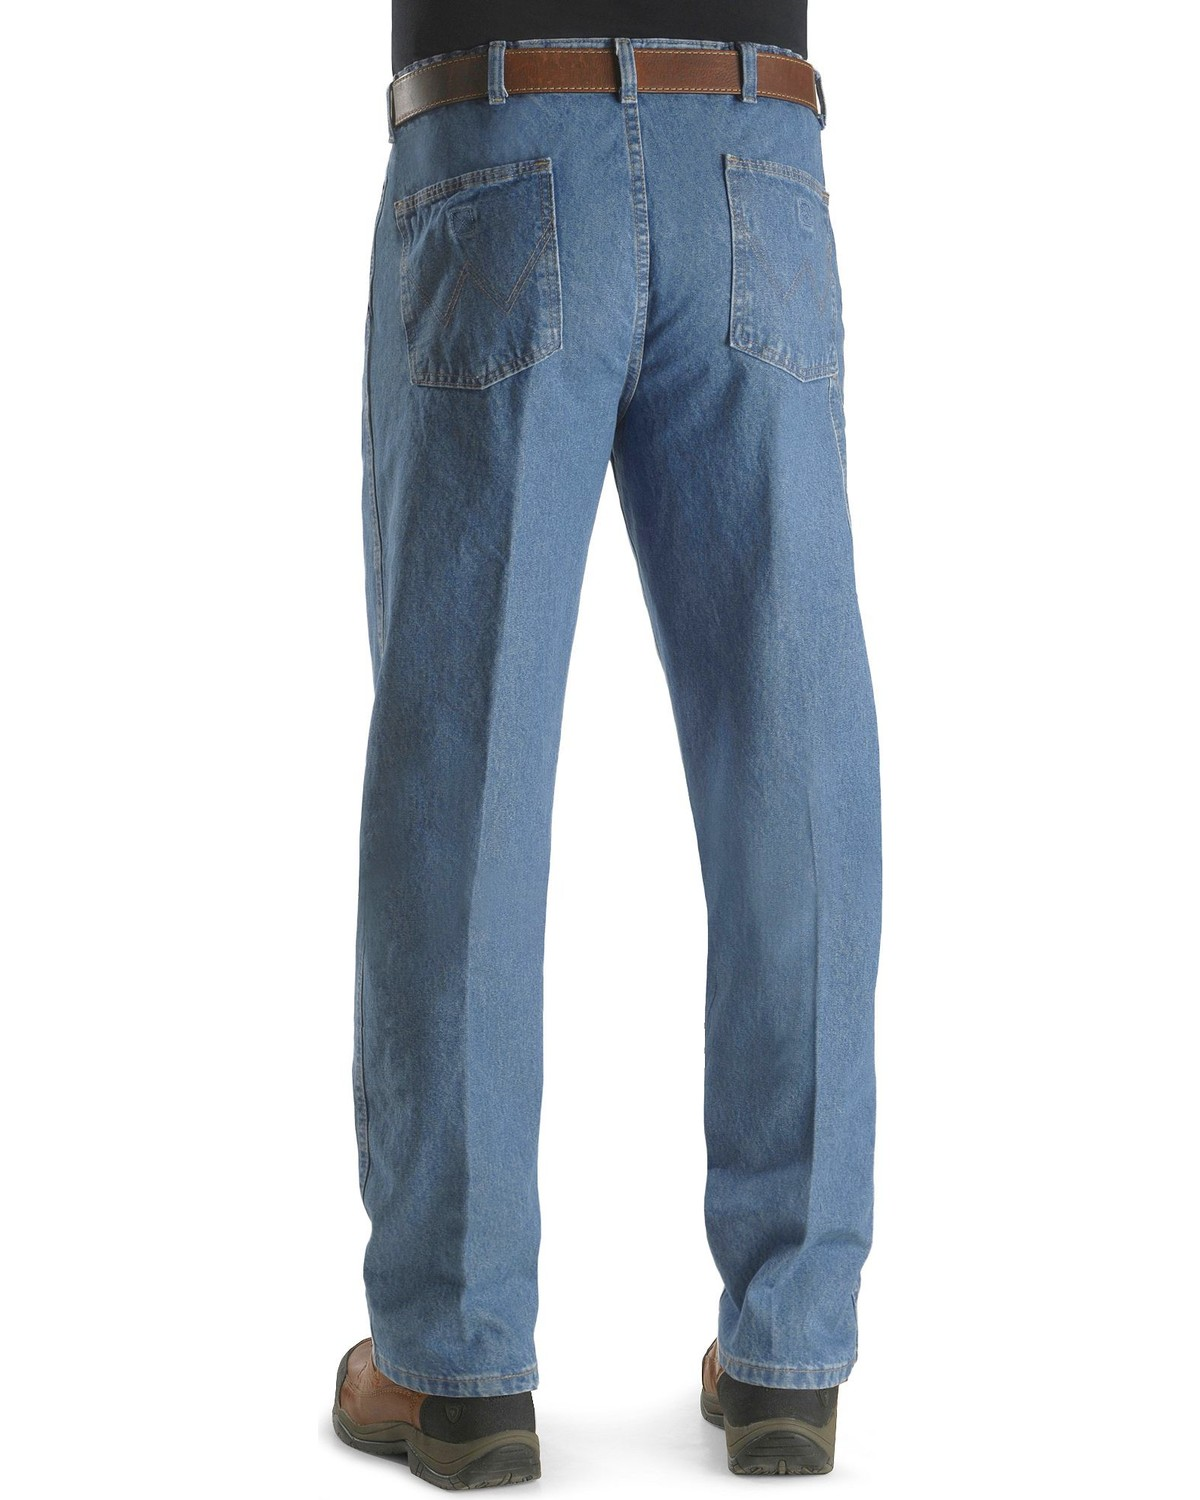 6b2bb00f Zoomed Image Wrangler Rugged Wear Men's Angler Jeans, Indigo, ...